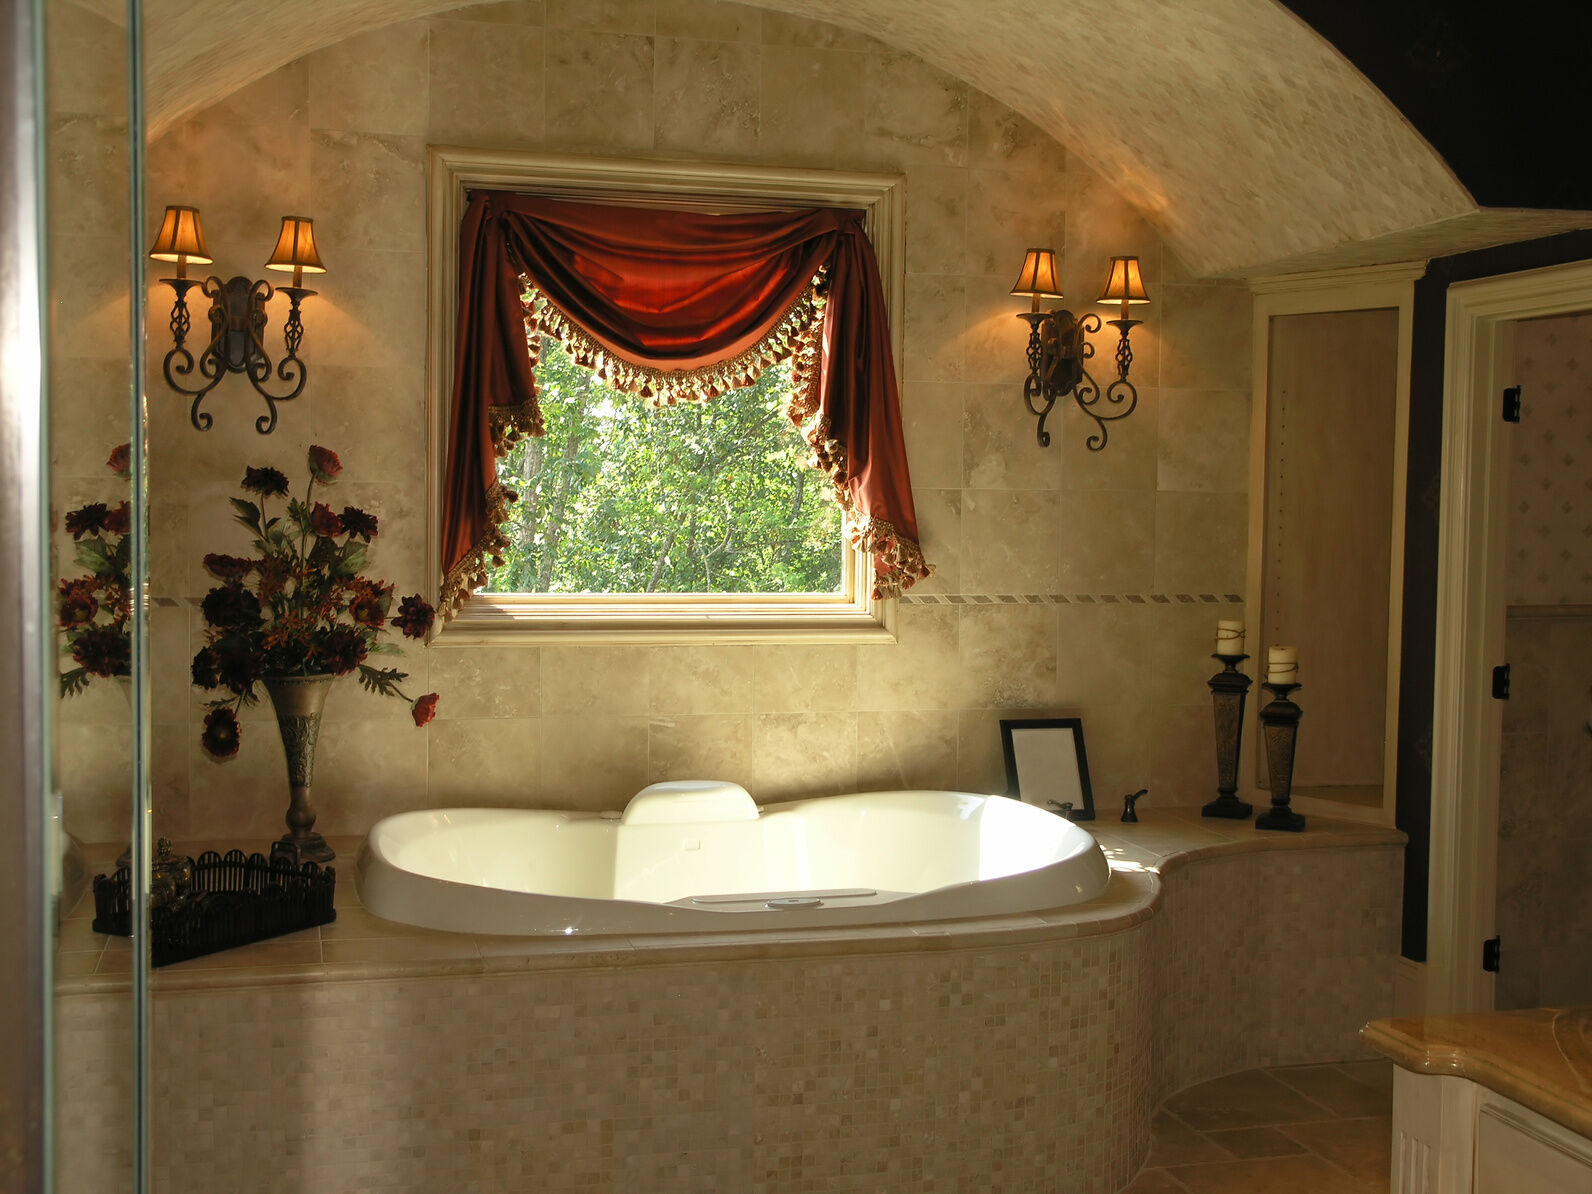 how to decorate a garden tub ebay. Black Bedroom Furniture Sets. Home Design Ideas